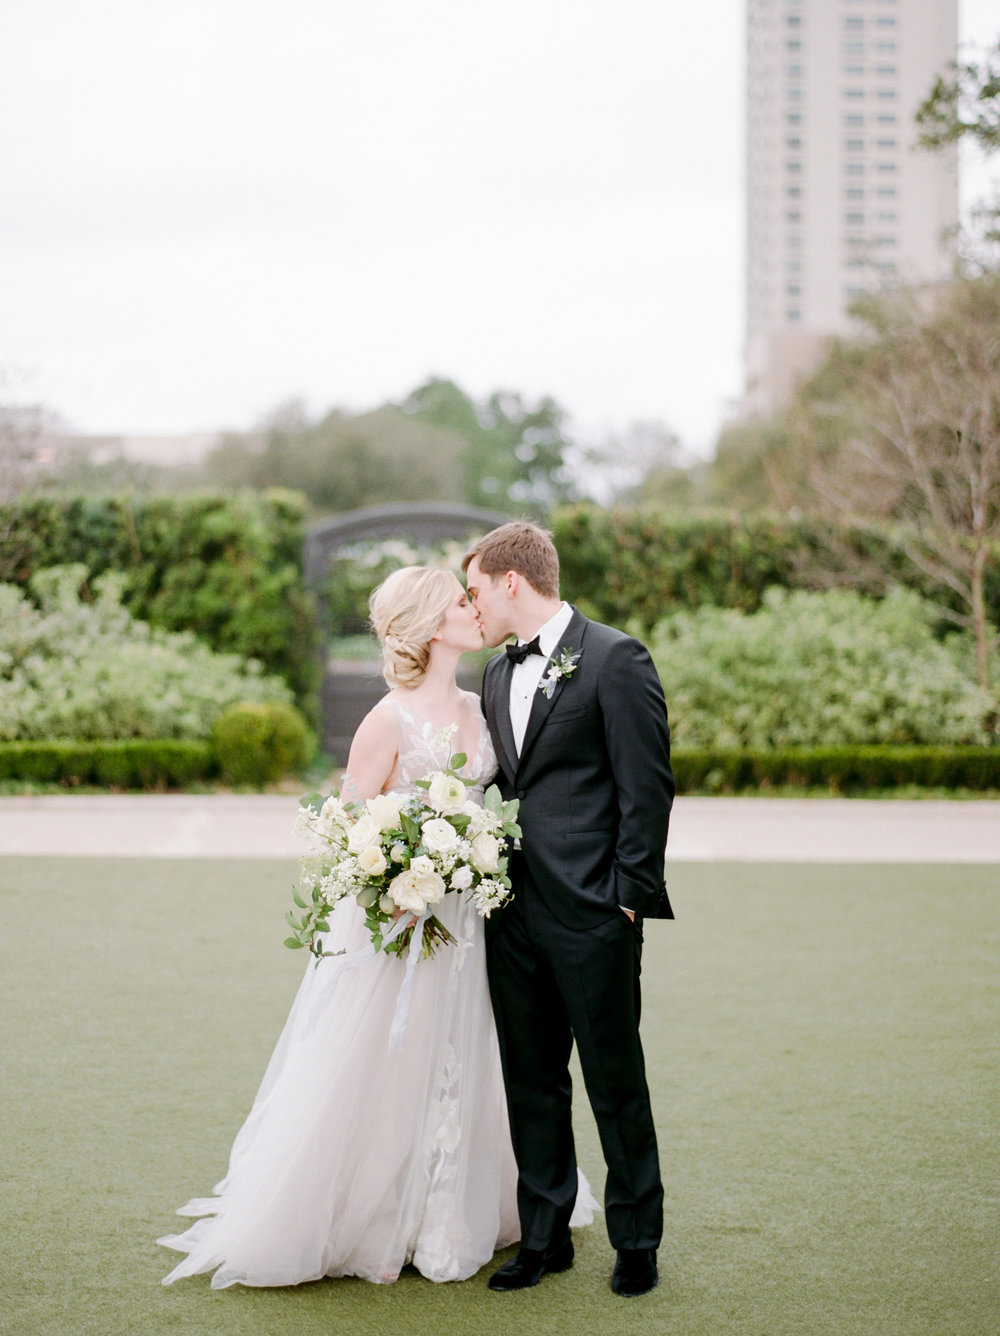 McGovern-Centennial-Gardens-Houston-Texas-Wedding-Venue-Josh-Dana-Fernandez-Photography-Film-Destination-Fine-Art-Luxury-Top-Best-Austin-Dallas-Magnolia-Rouge-Jennifer-Laura-Design-202.jpg